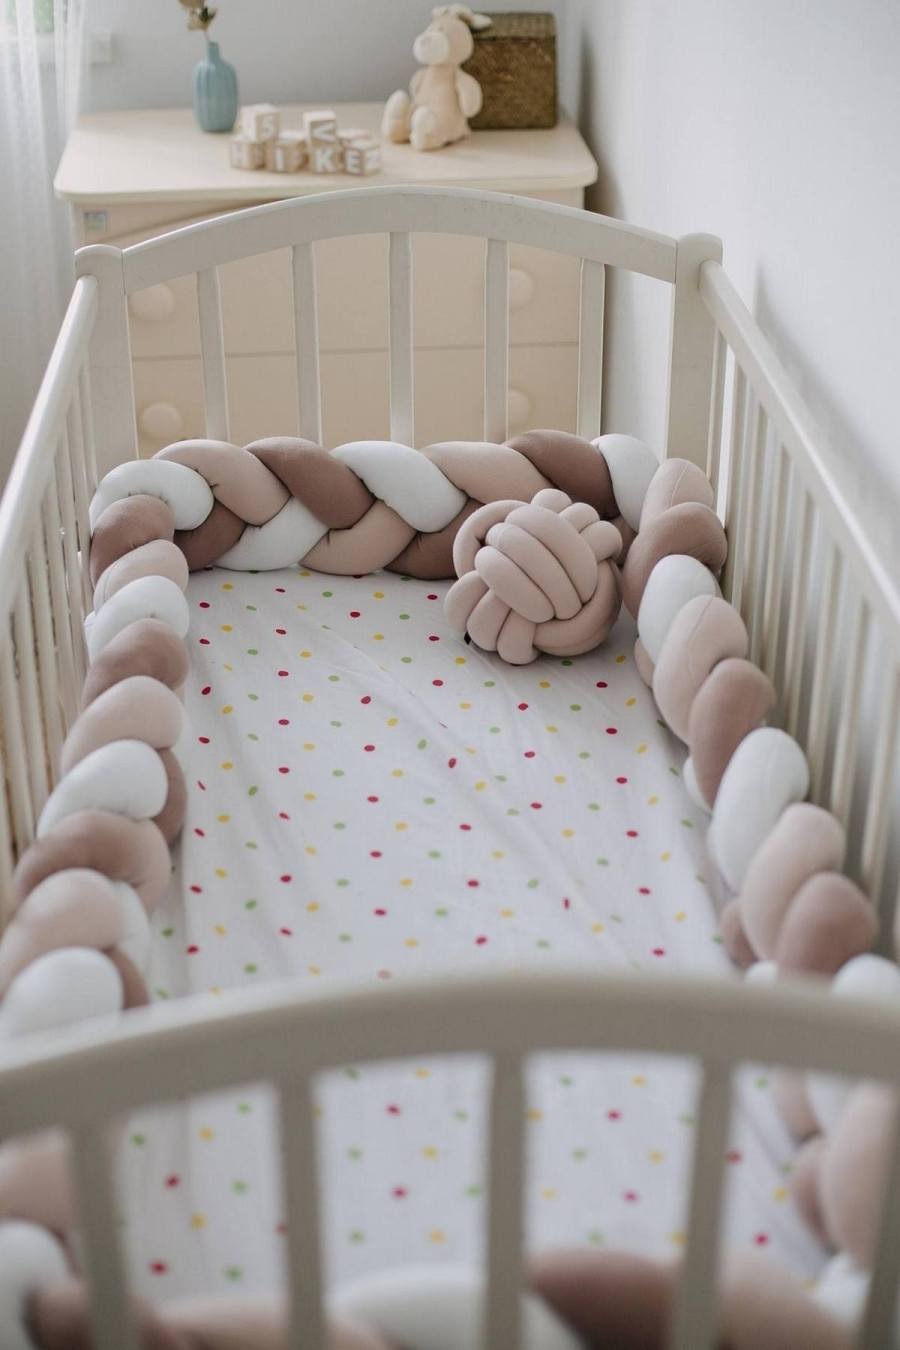 The baby crib bumper is one such product that helps you to ensure safety and comfort for your child.